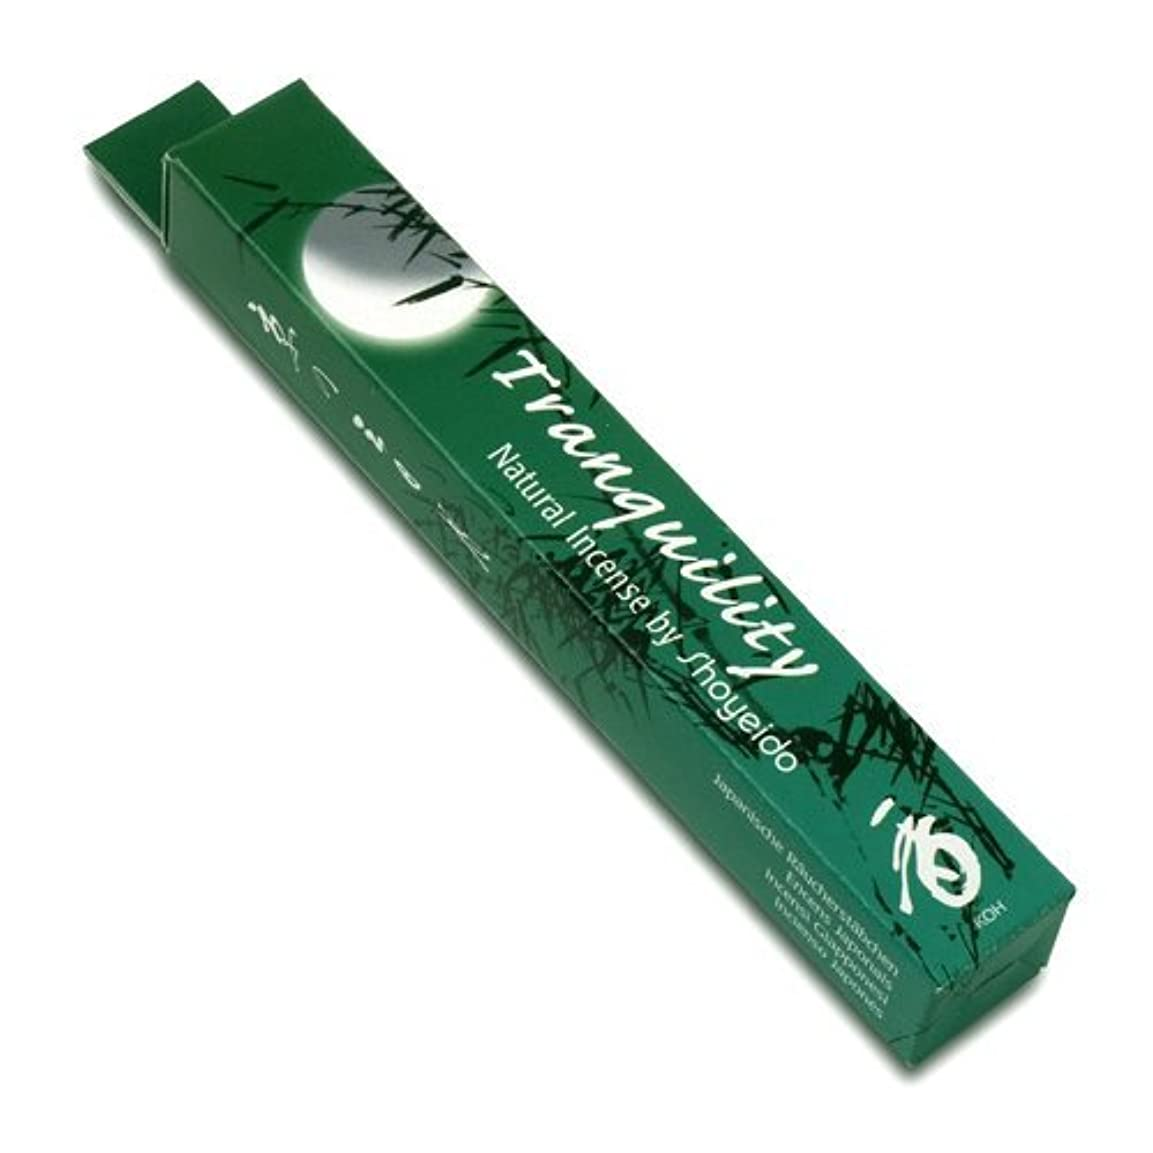 りんごまっすぐ火山Shoyeido's Tranquility Incense 40 sticks - Kyoto Moon Series [並行輸入品]